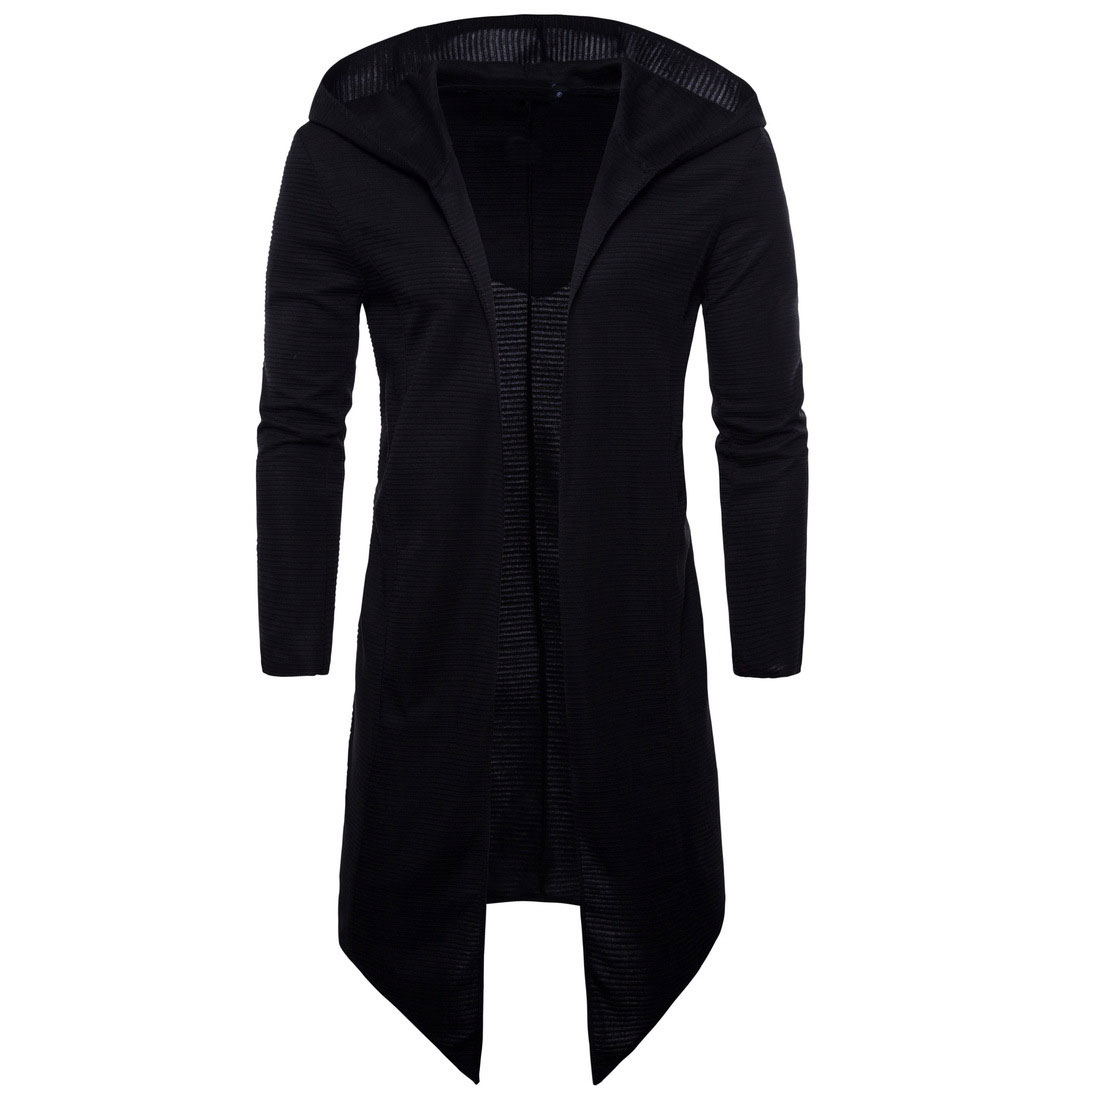 Men's Clothing Men Trench Coat Spring Fashion Long Fit Trench Coat Men Overcoat Orders Are Welcome.